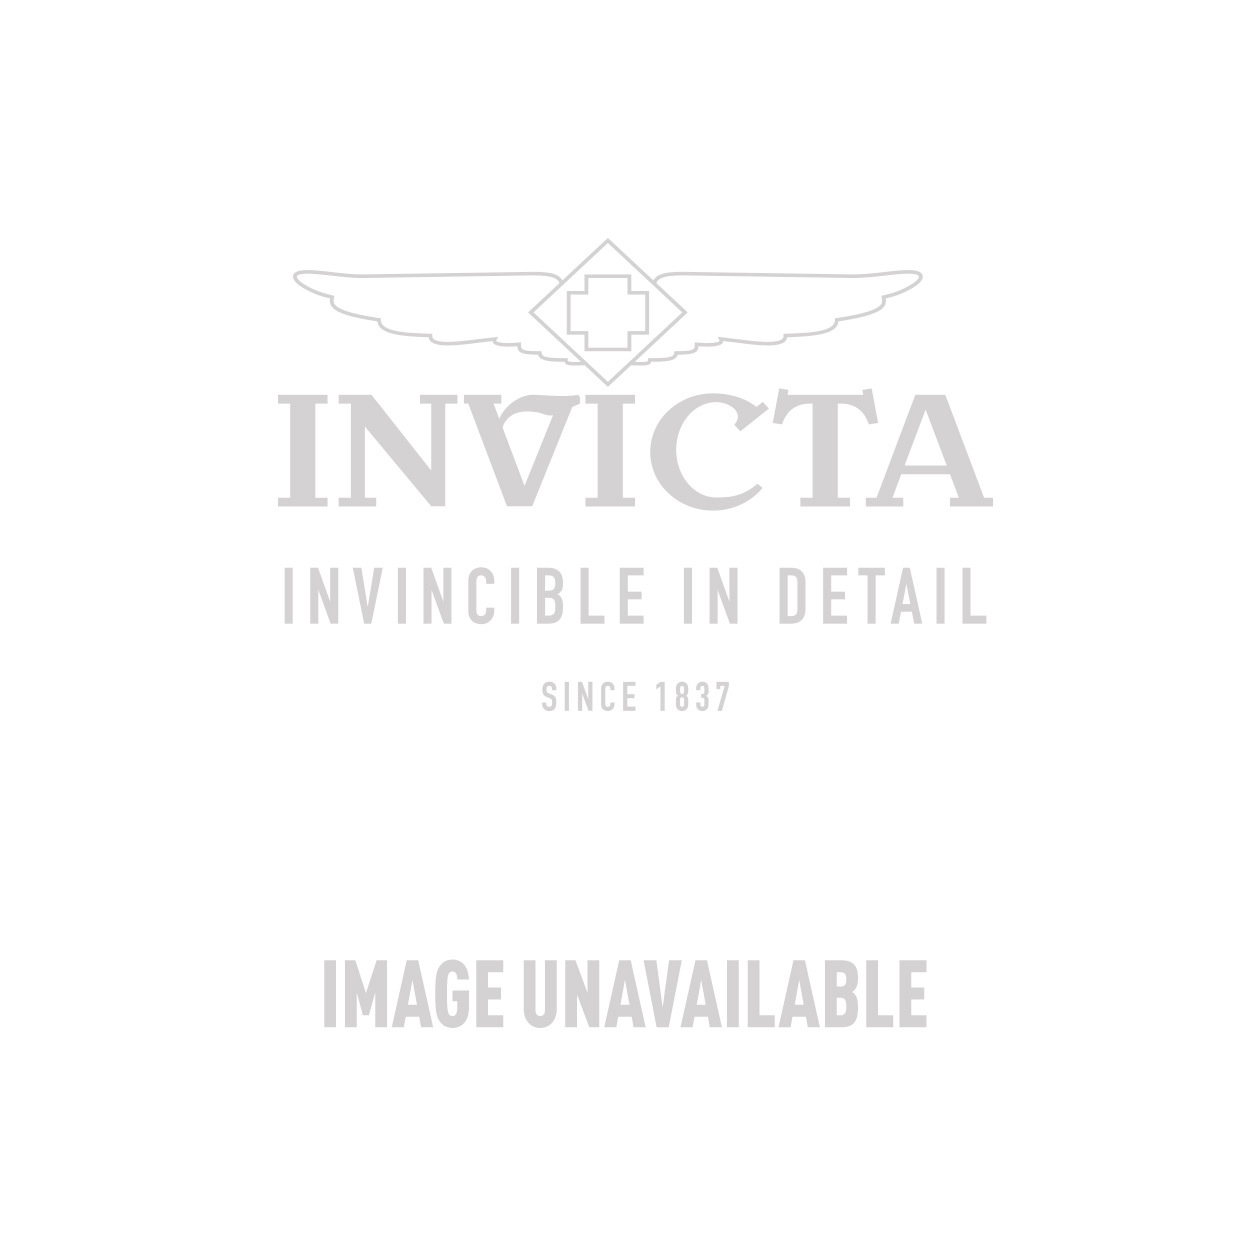 Invicta Lupah Swiss Movement Quartz Watch - Stainless Steel case with Black tone Leather band - Model 13691